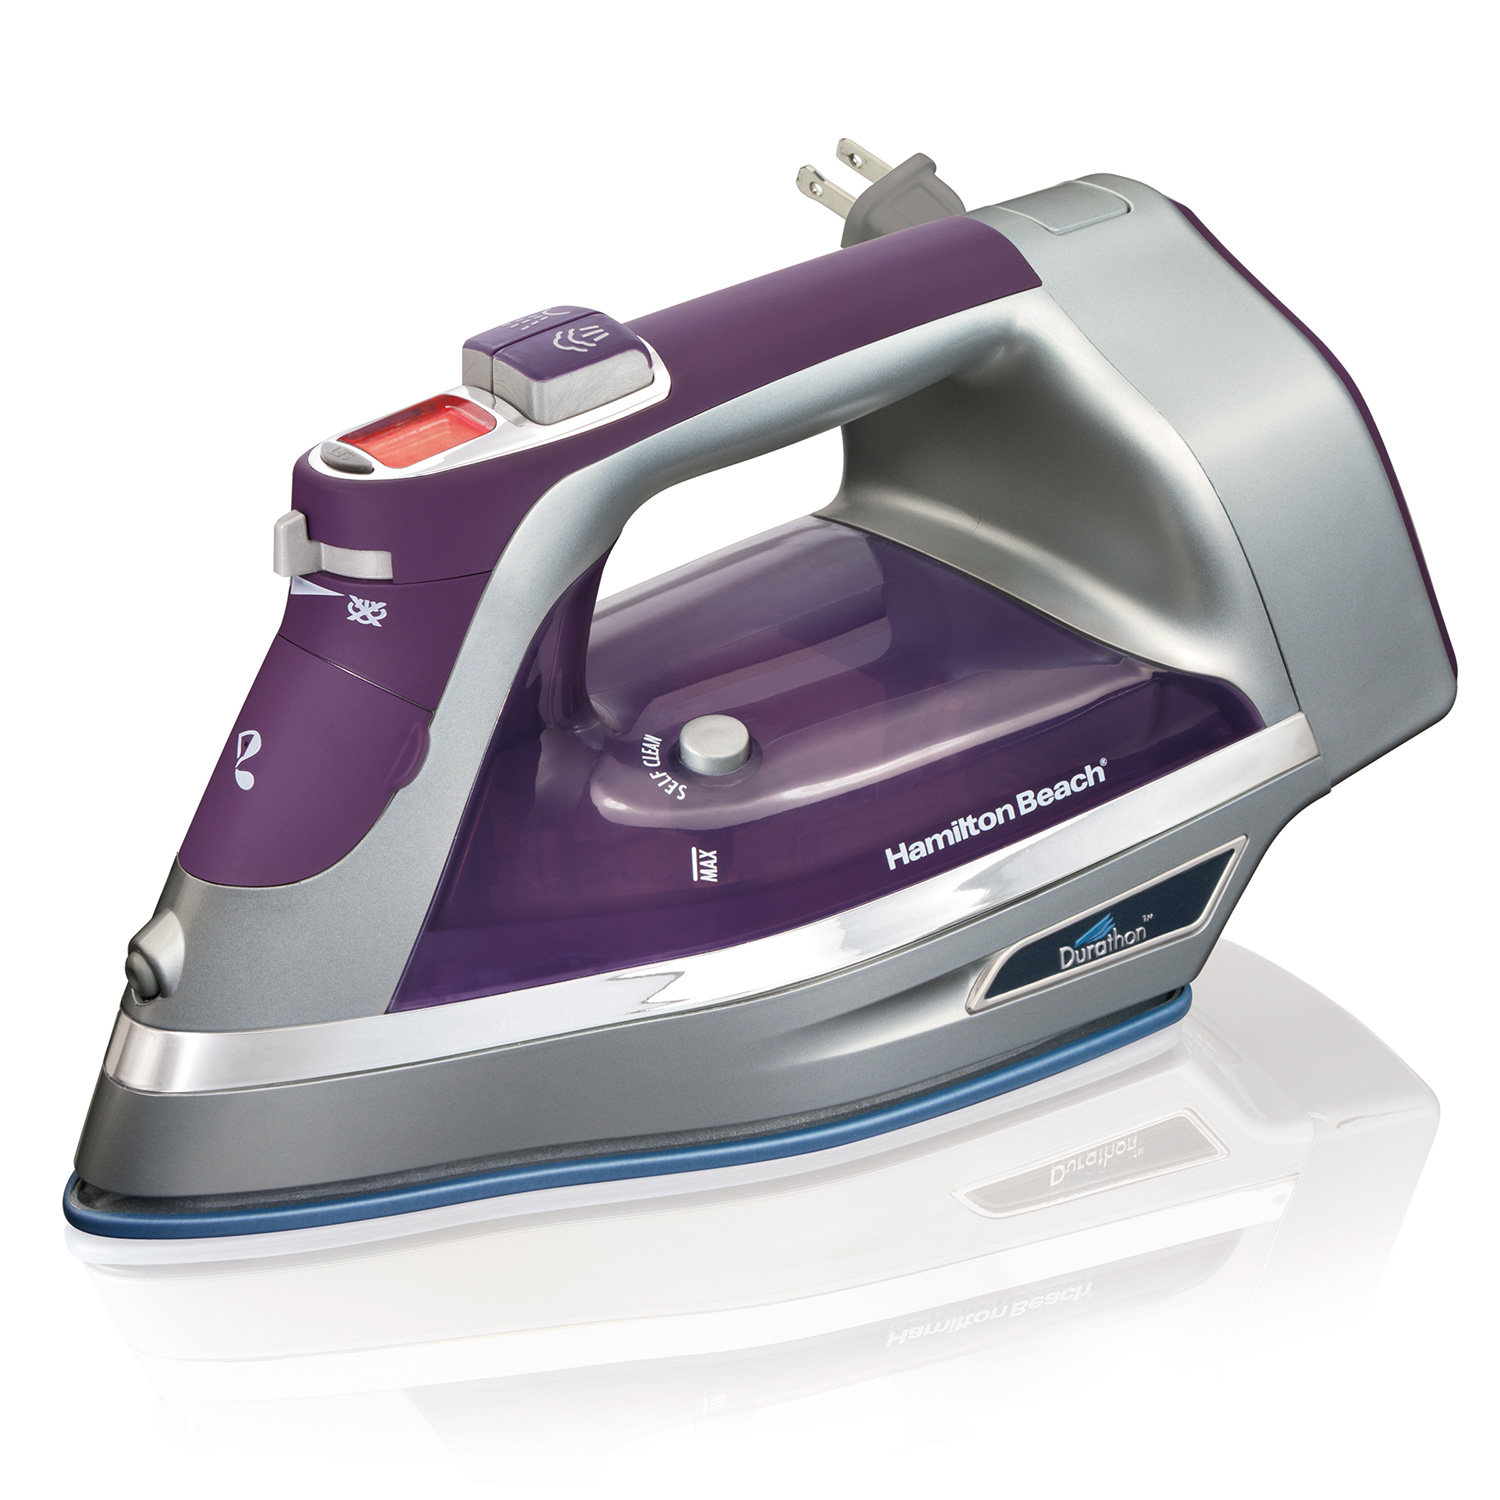 Durathon® Digital Iron with Retractable Cord (19902R)